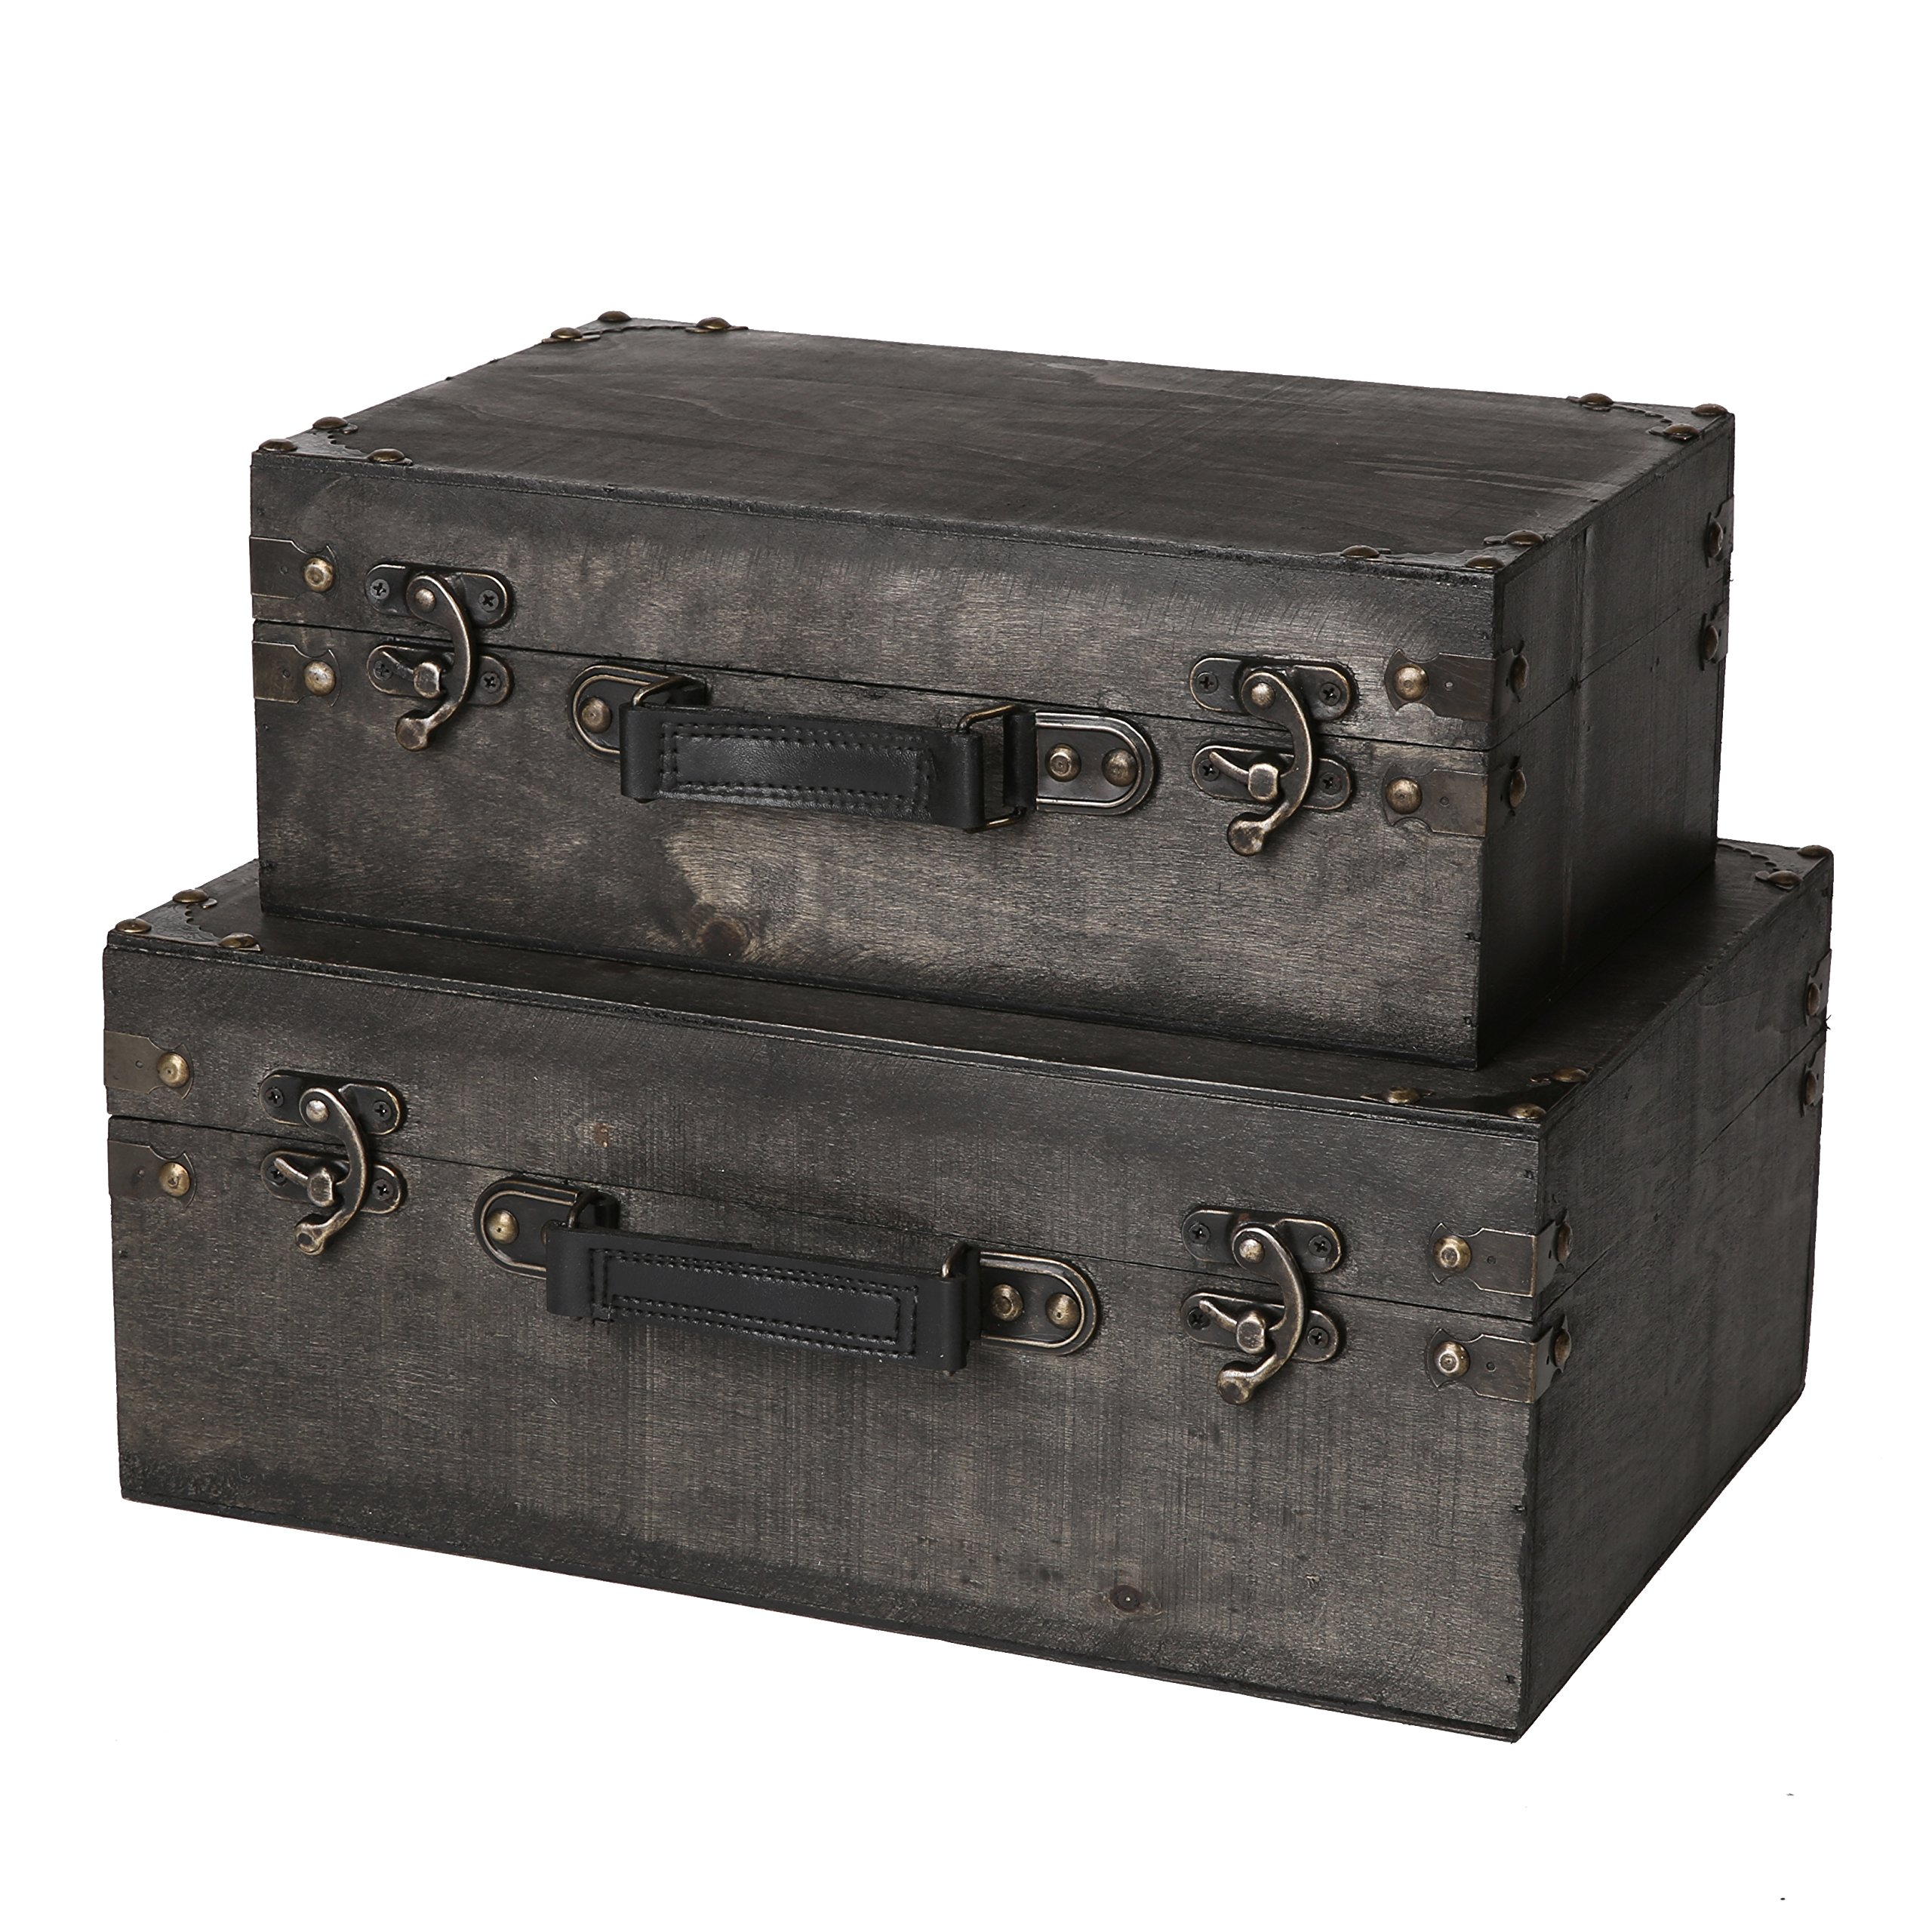 SLPR Jackson Wooden Trunk with Straps (Set of 2, Grey Wood) | Old-Fashioned Antique Vintage Style Nesting Trunks for Shelf Home Decor Birthday Parties Wedding Decoration Displays Crafts